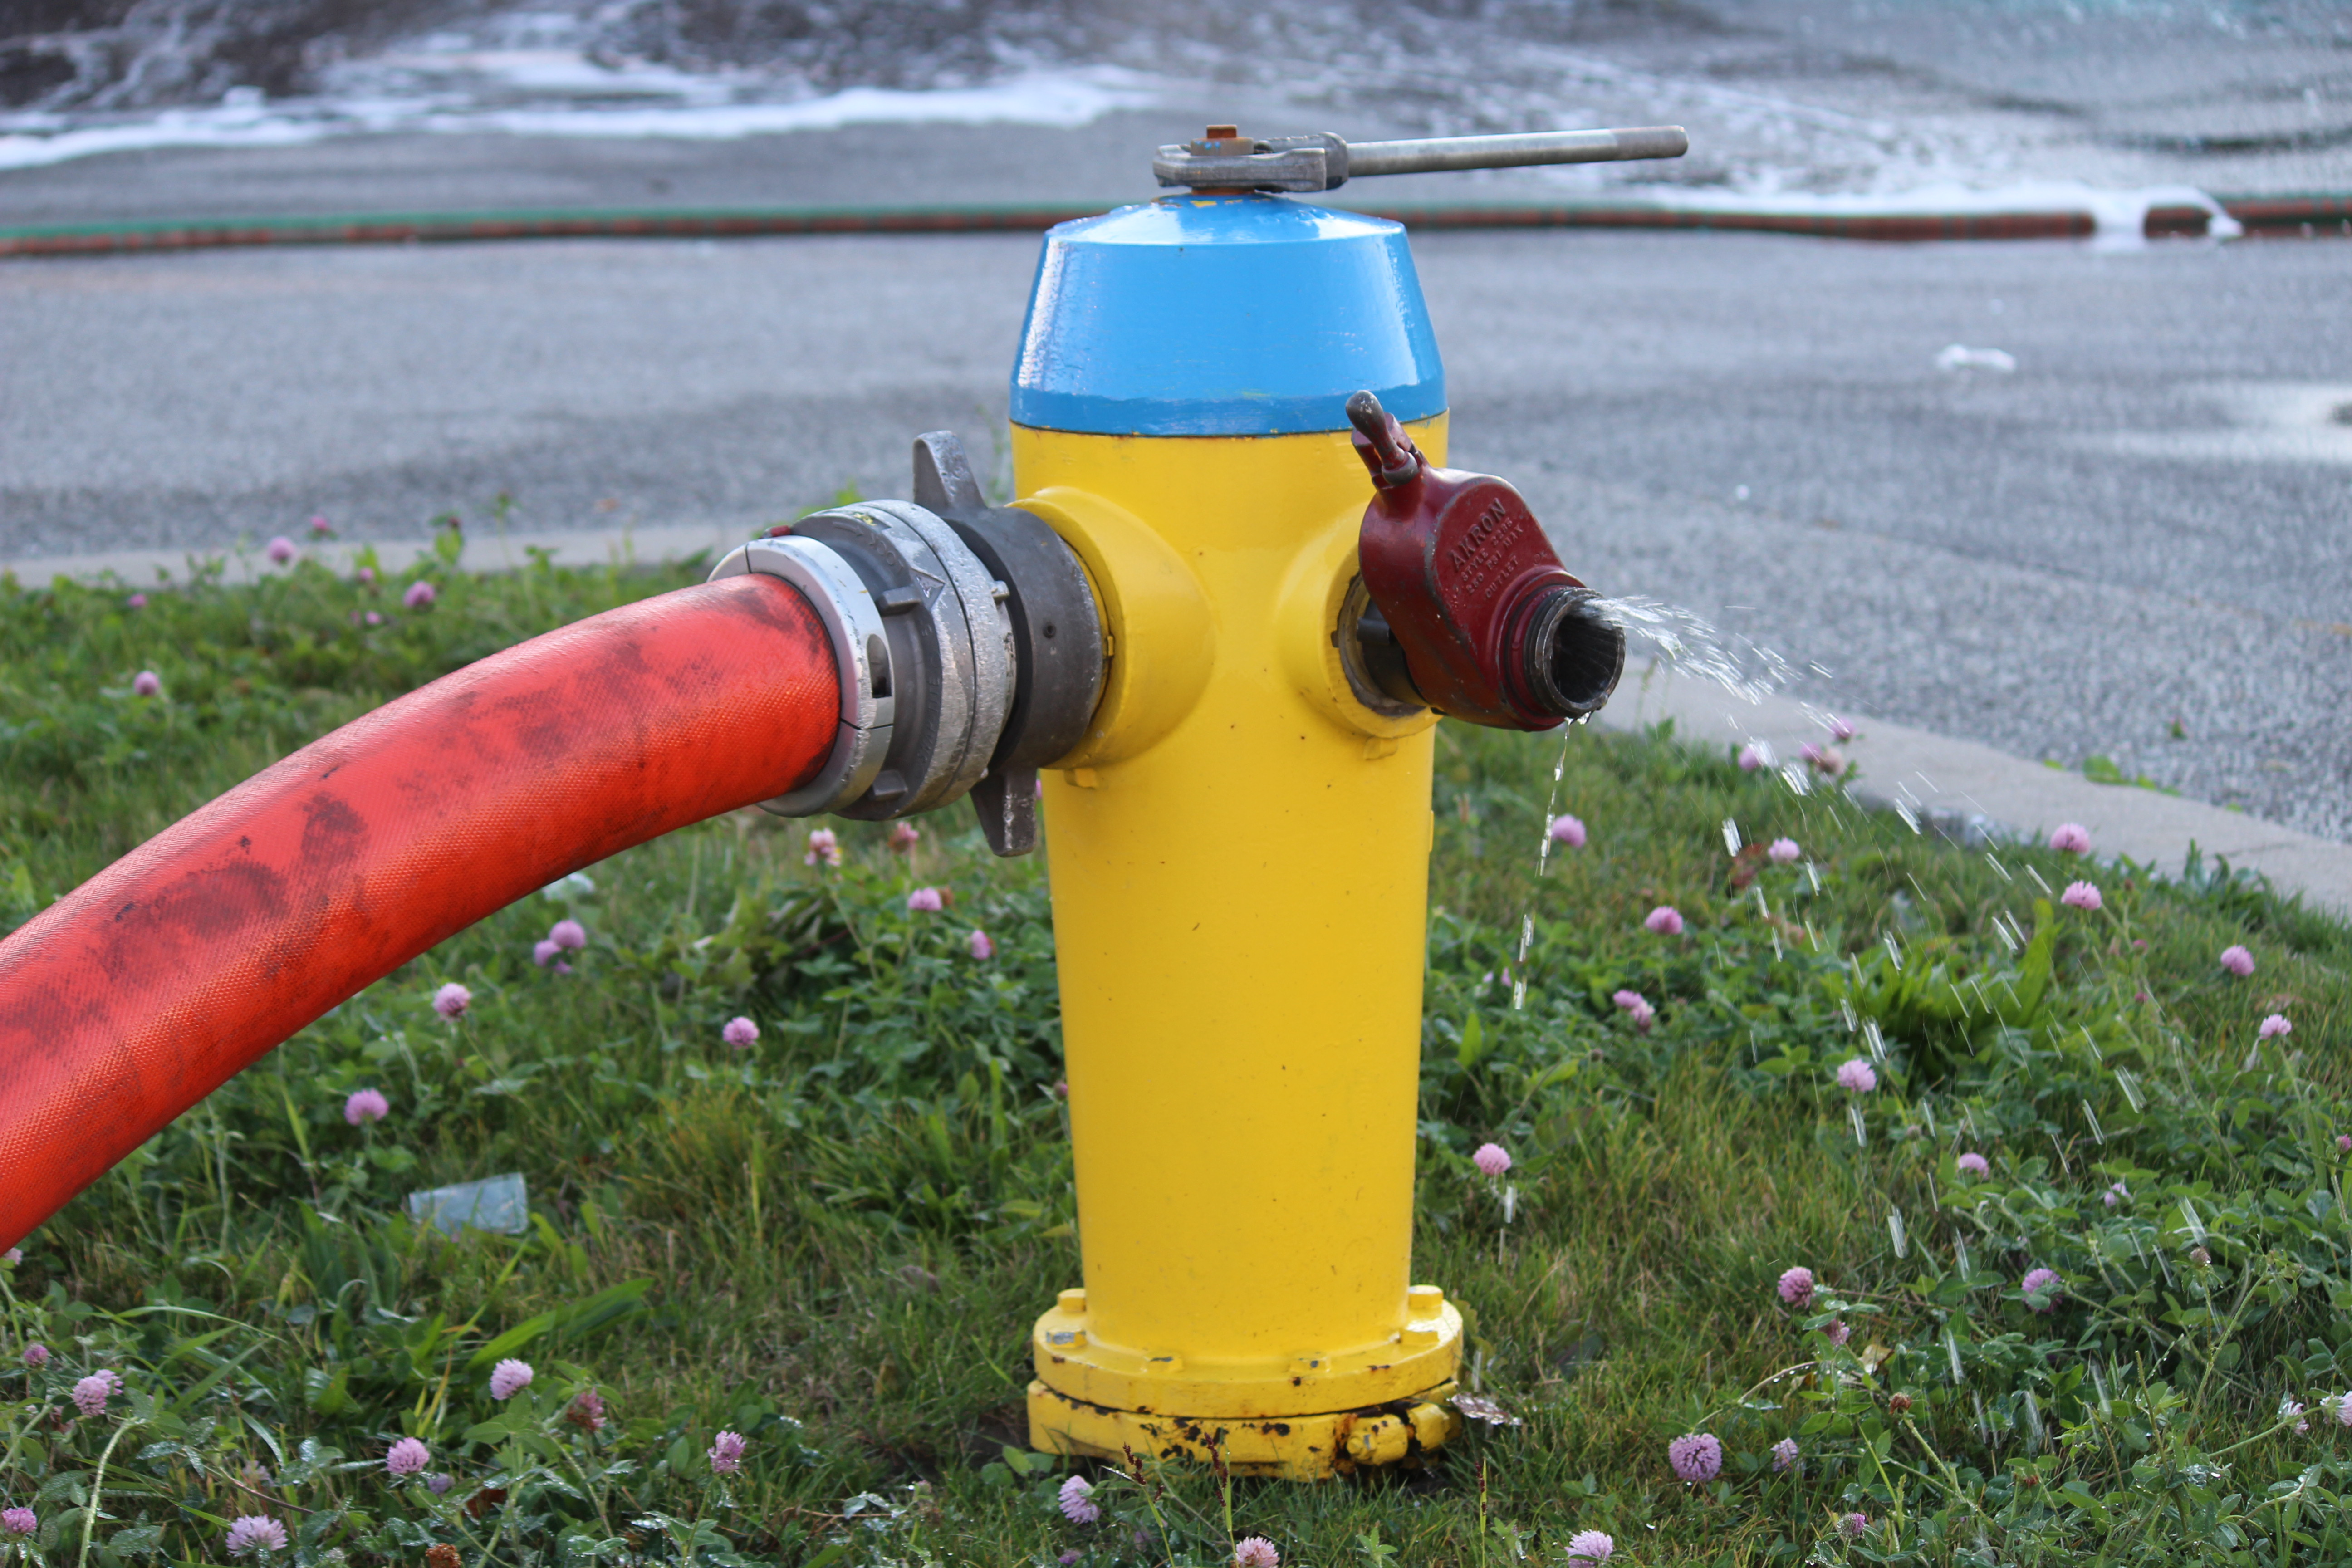 A fire hydrant. (Photo by Adelle Loiselle)